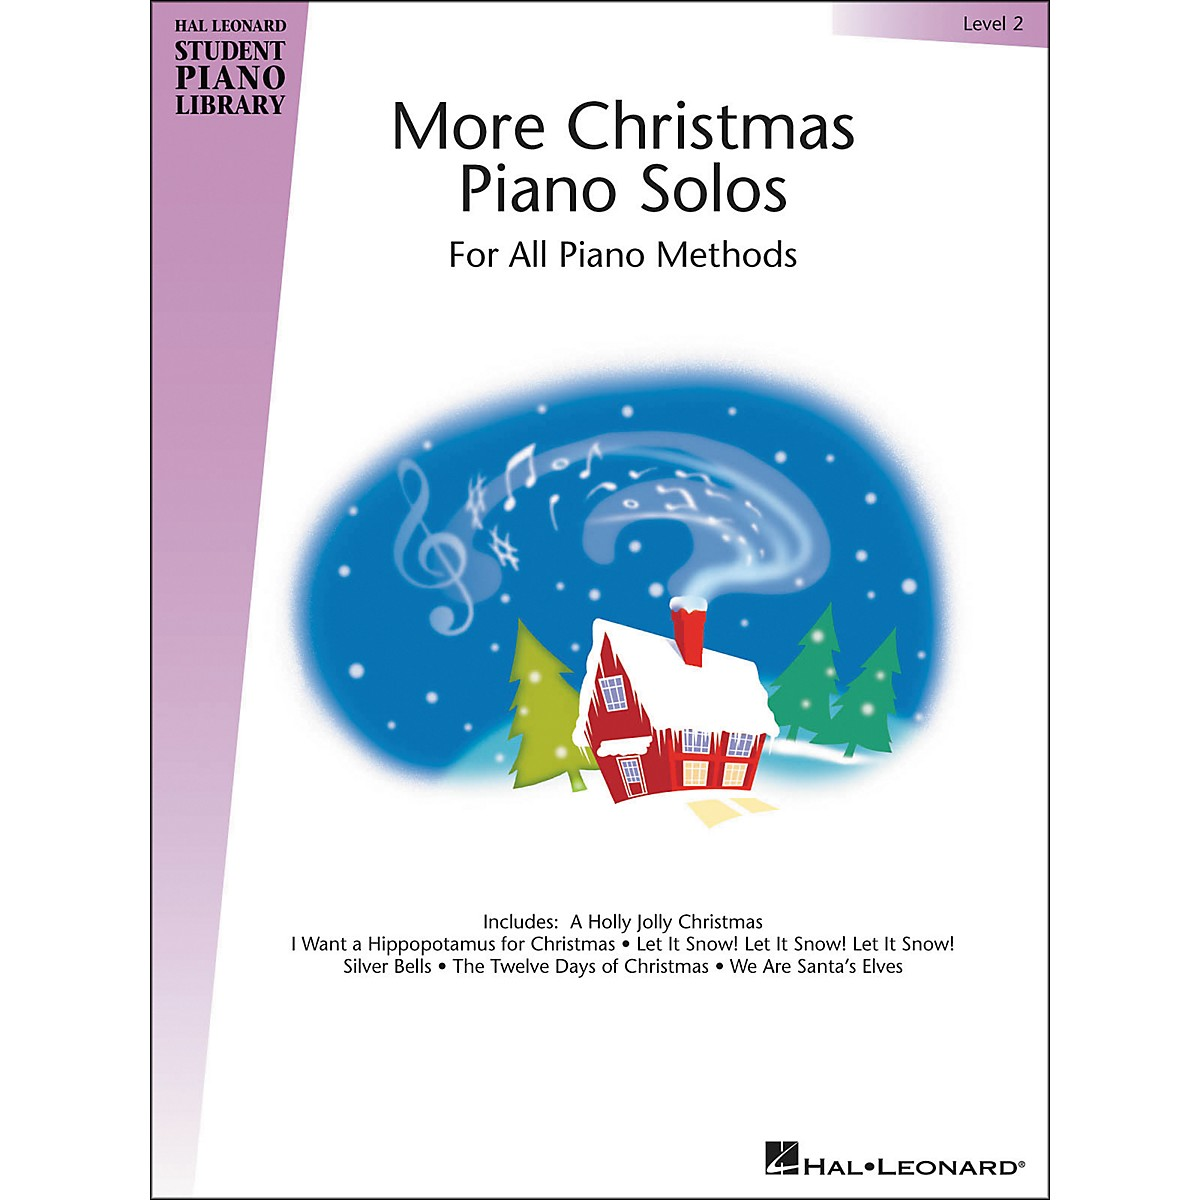 Hal Leonard More Christmas Piano Solos Hal Leonard Student Piano Library Book 2